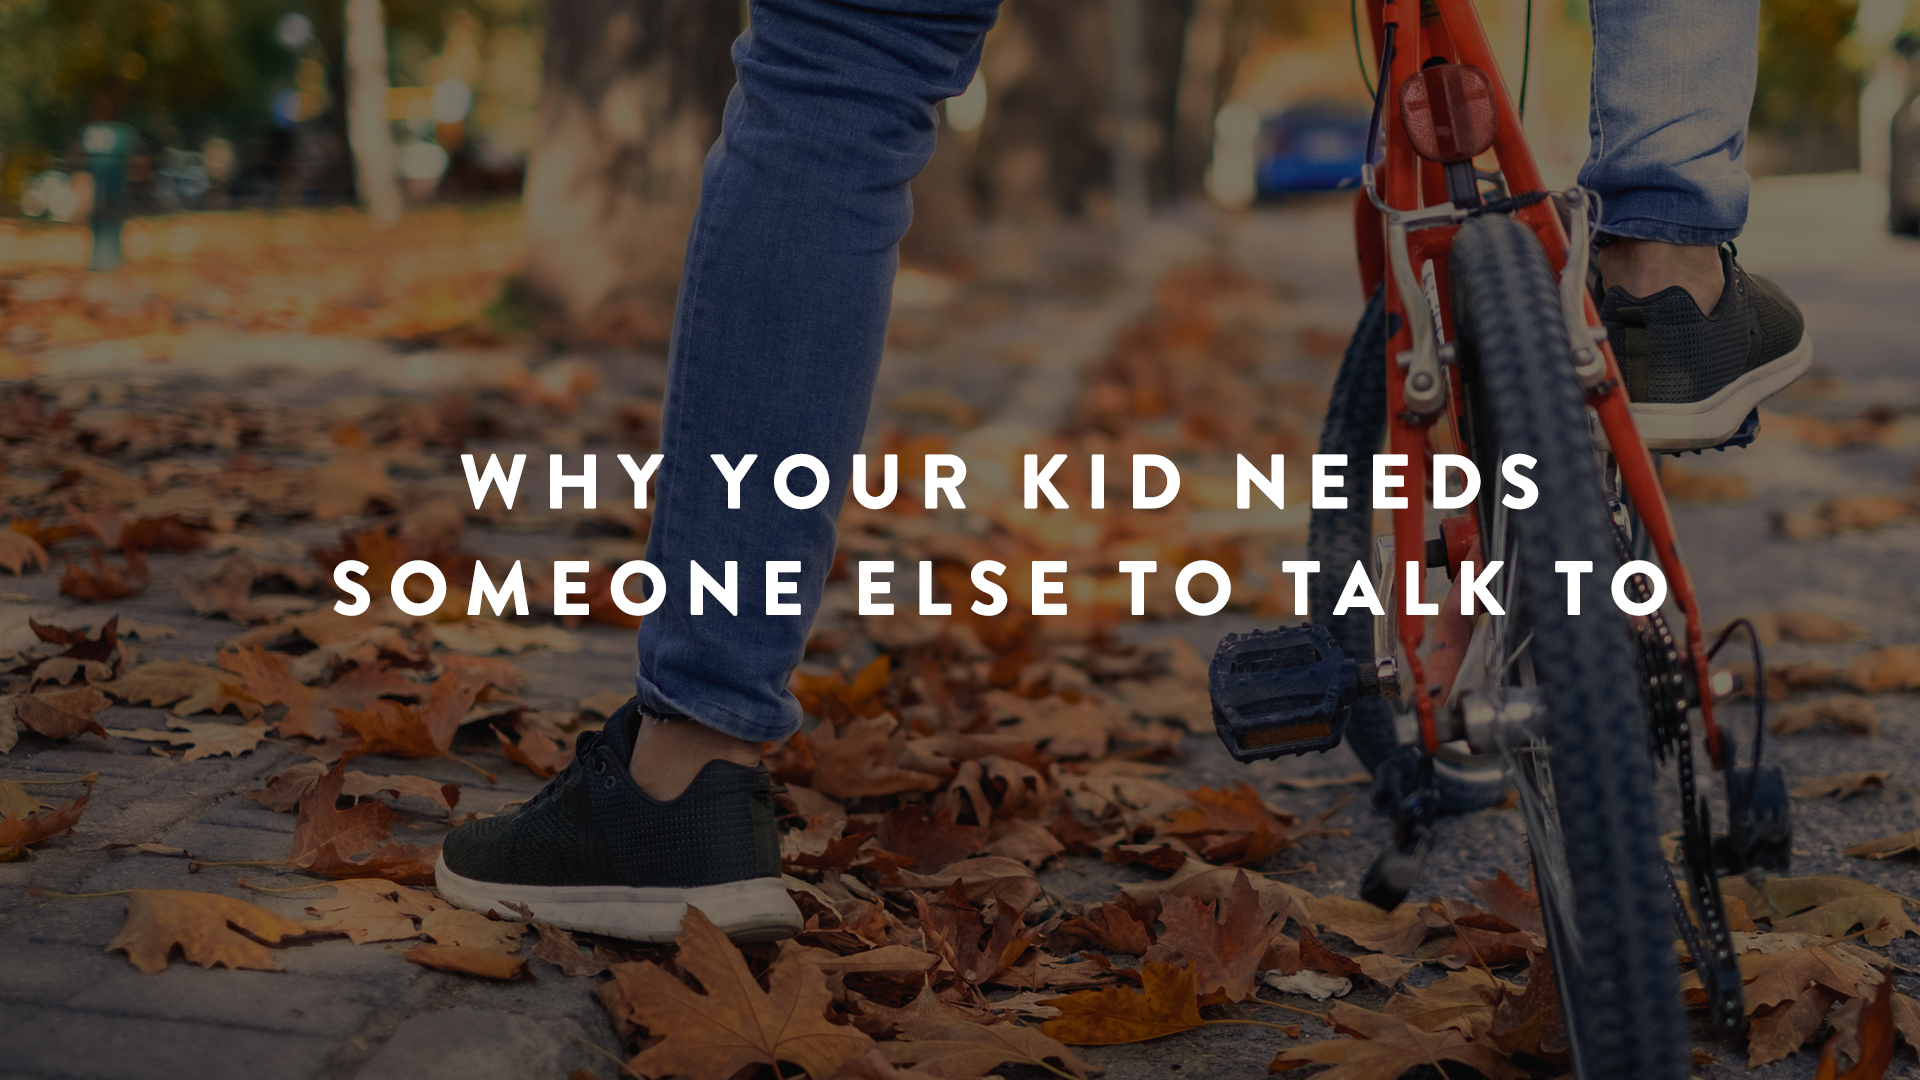 Why Your Kid Needs Someone Else to Talk to